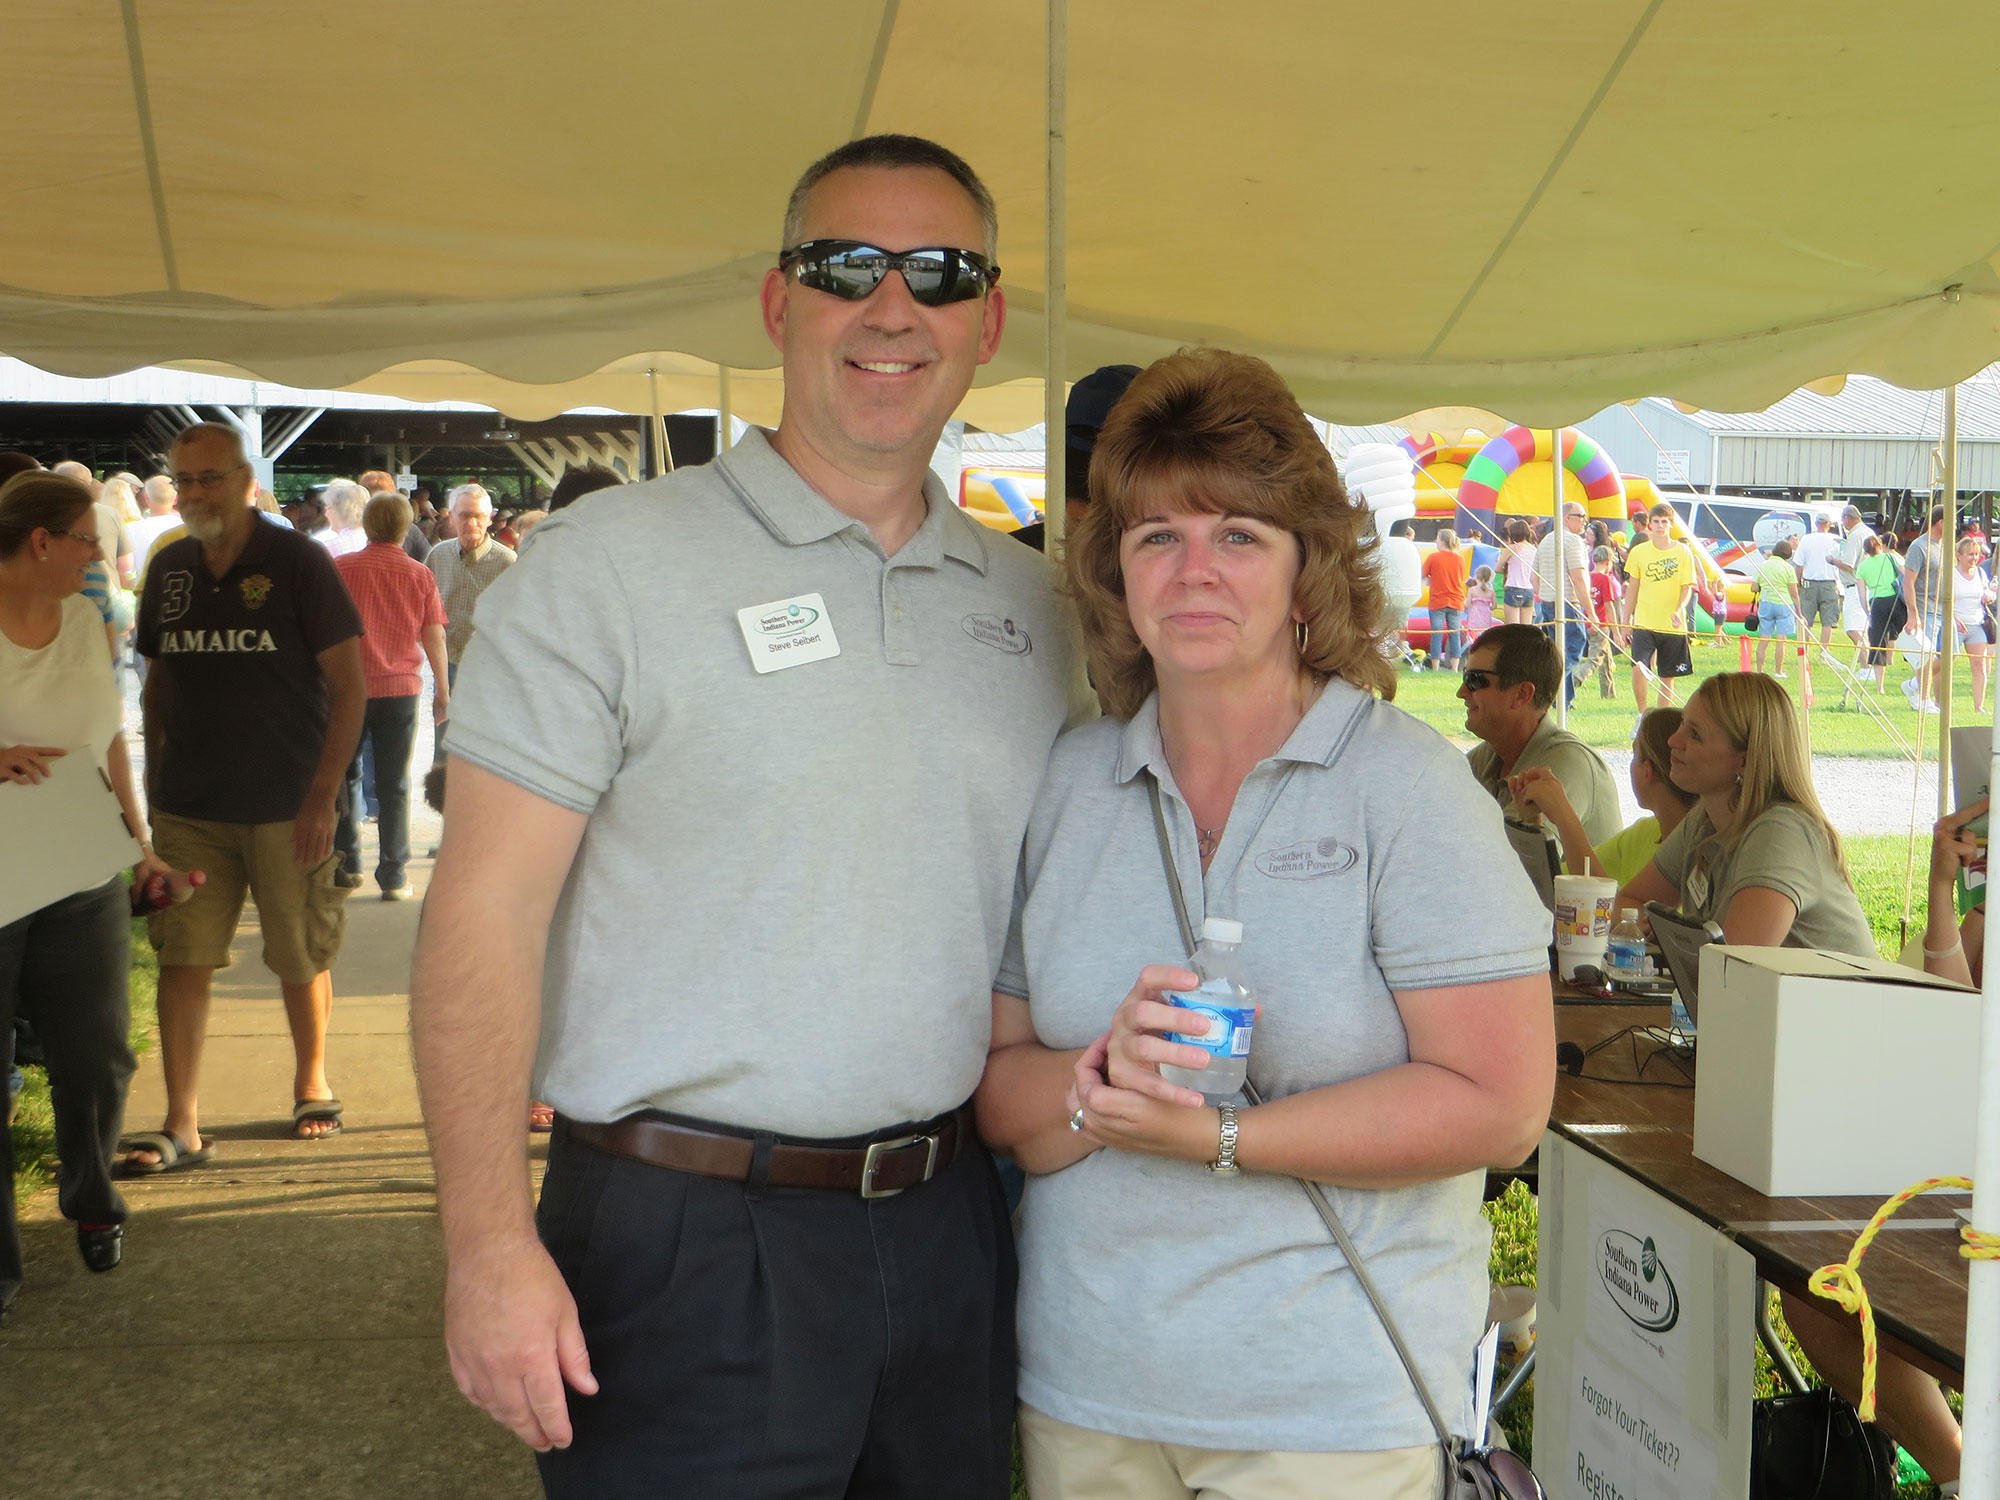 Two Southern Indiana Power employees together under a tent outside.